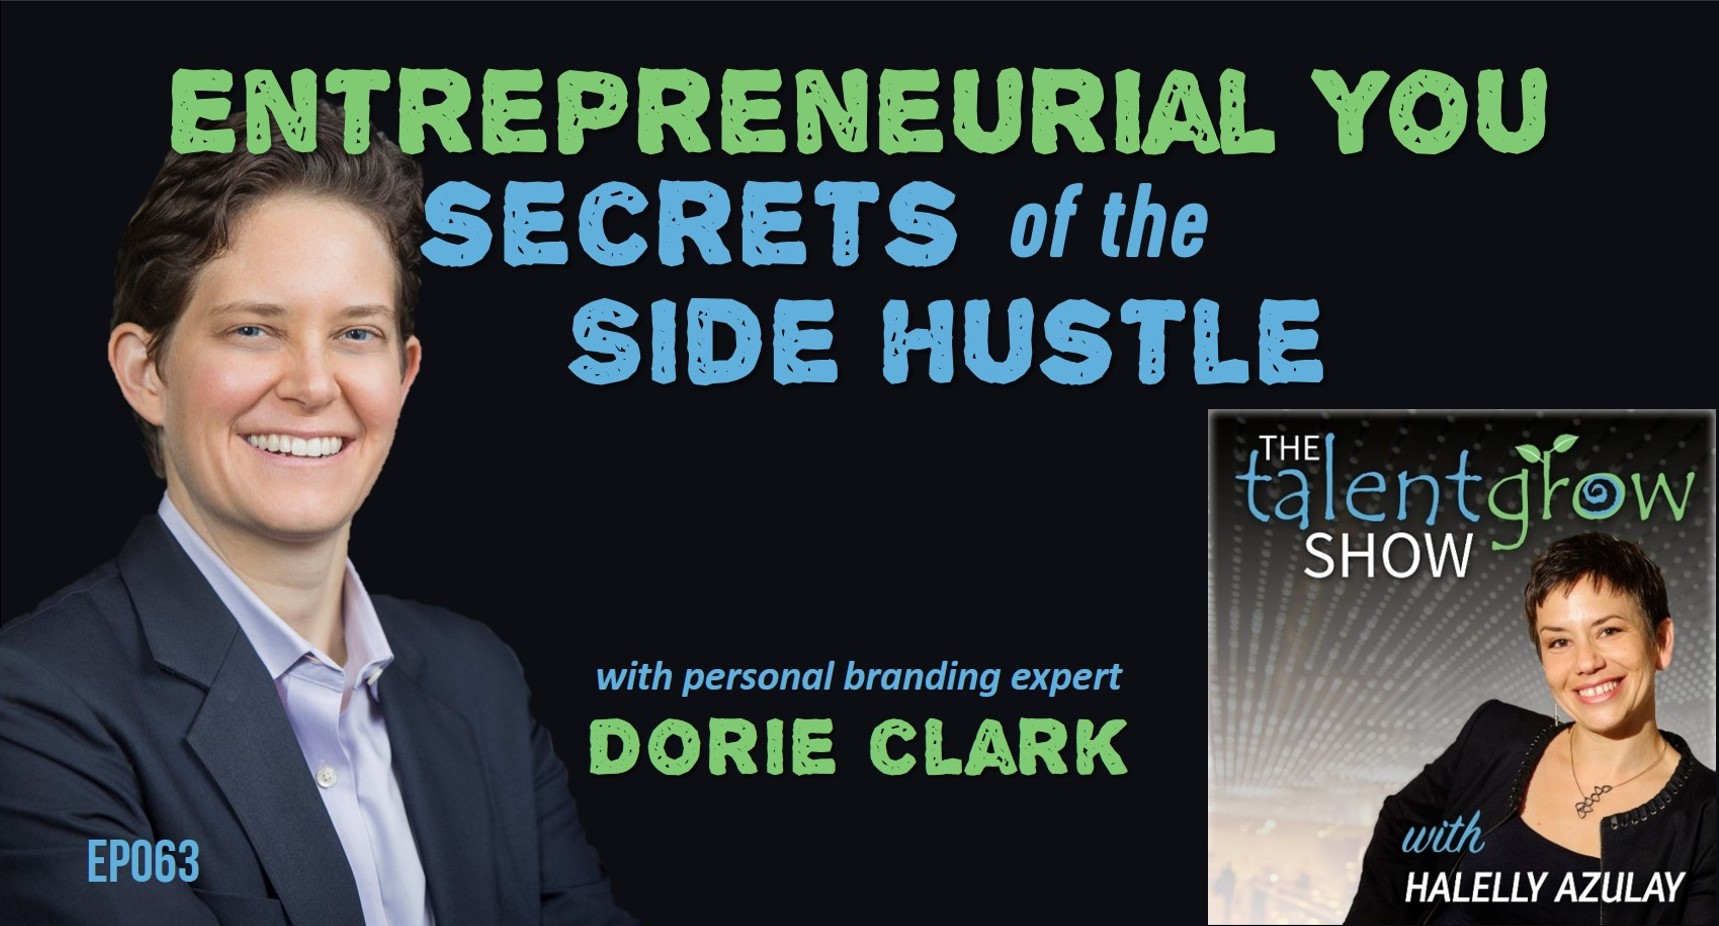 ep063 Entrepreneurial You secrets of the side hustle with personal branding expert Dorie Clark TalentGrow Show with Halelly Azulay